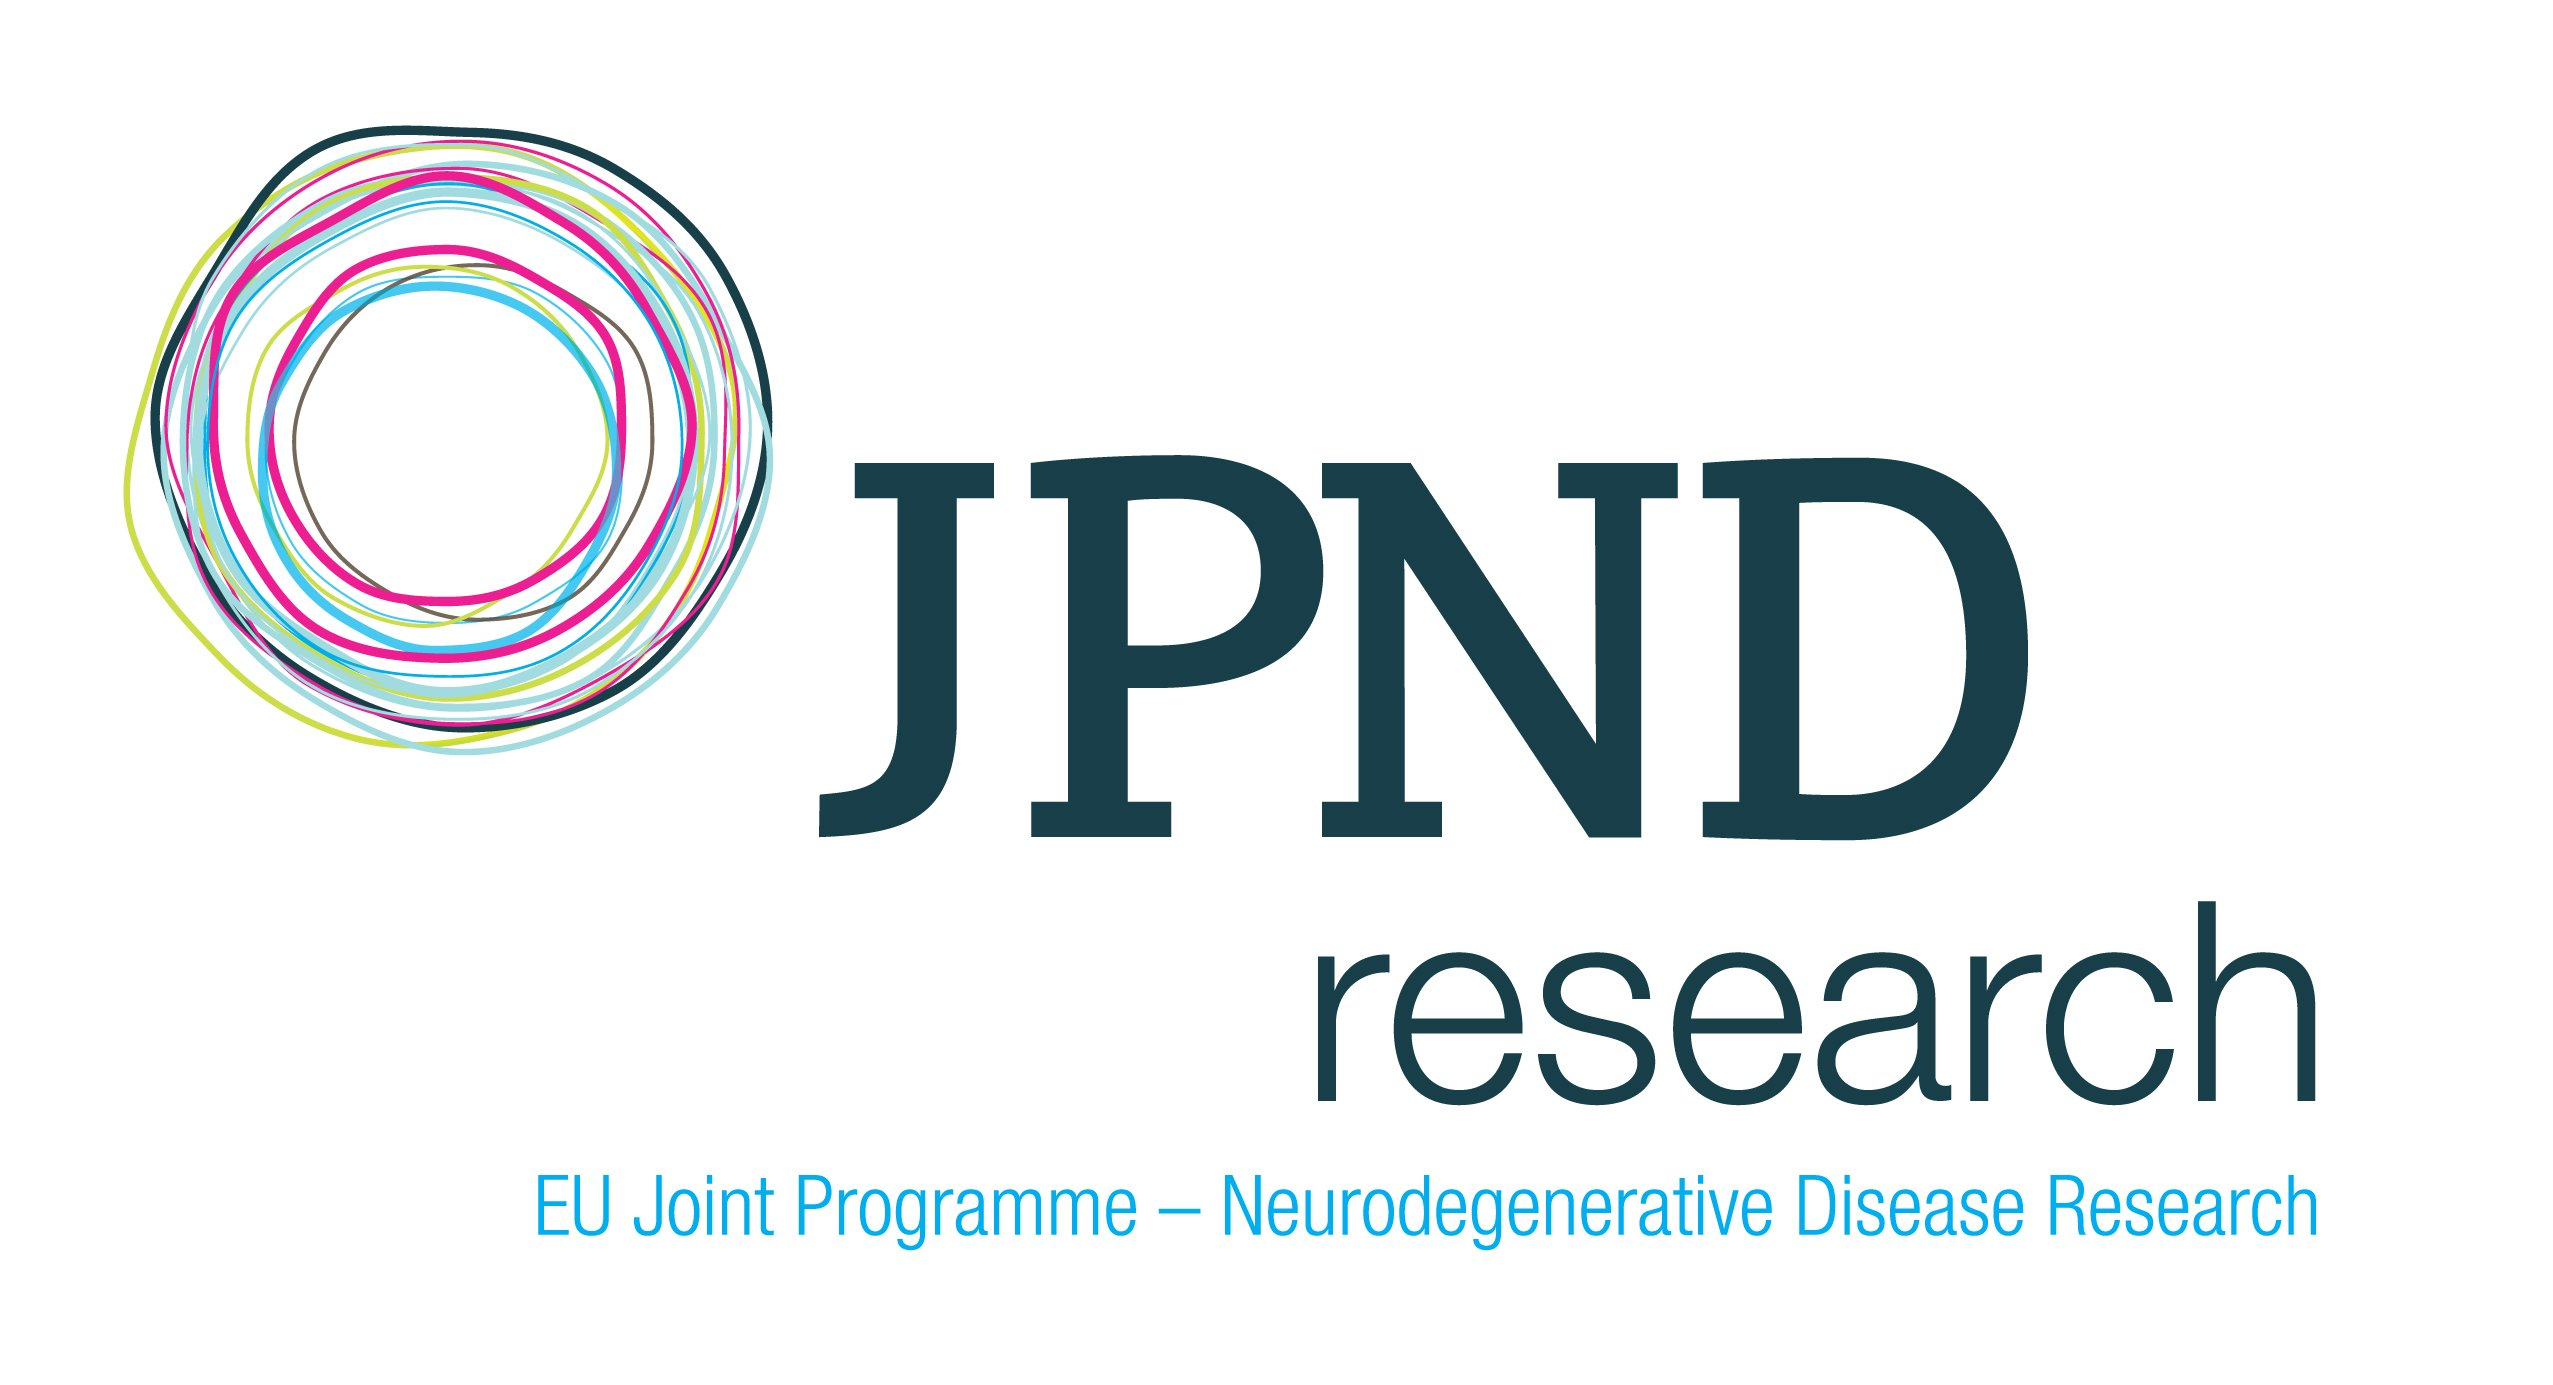 JPND_logo_colour_on_white_highres_843kb